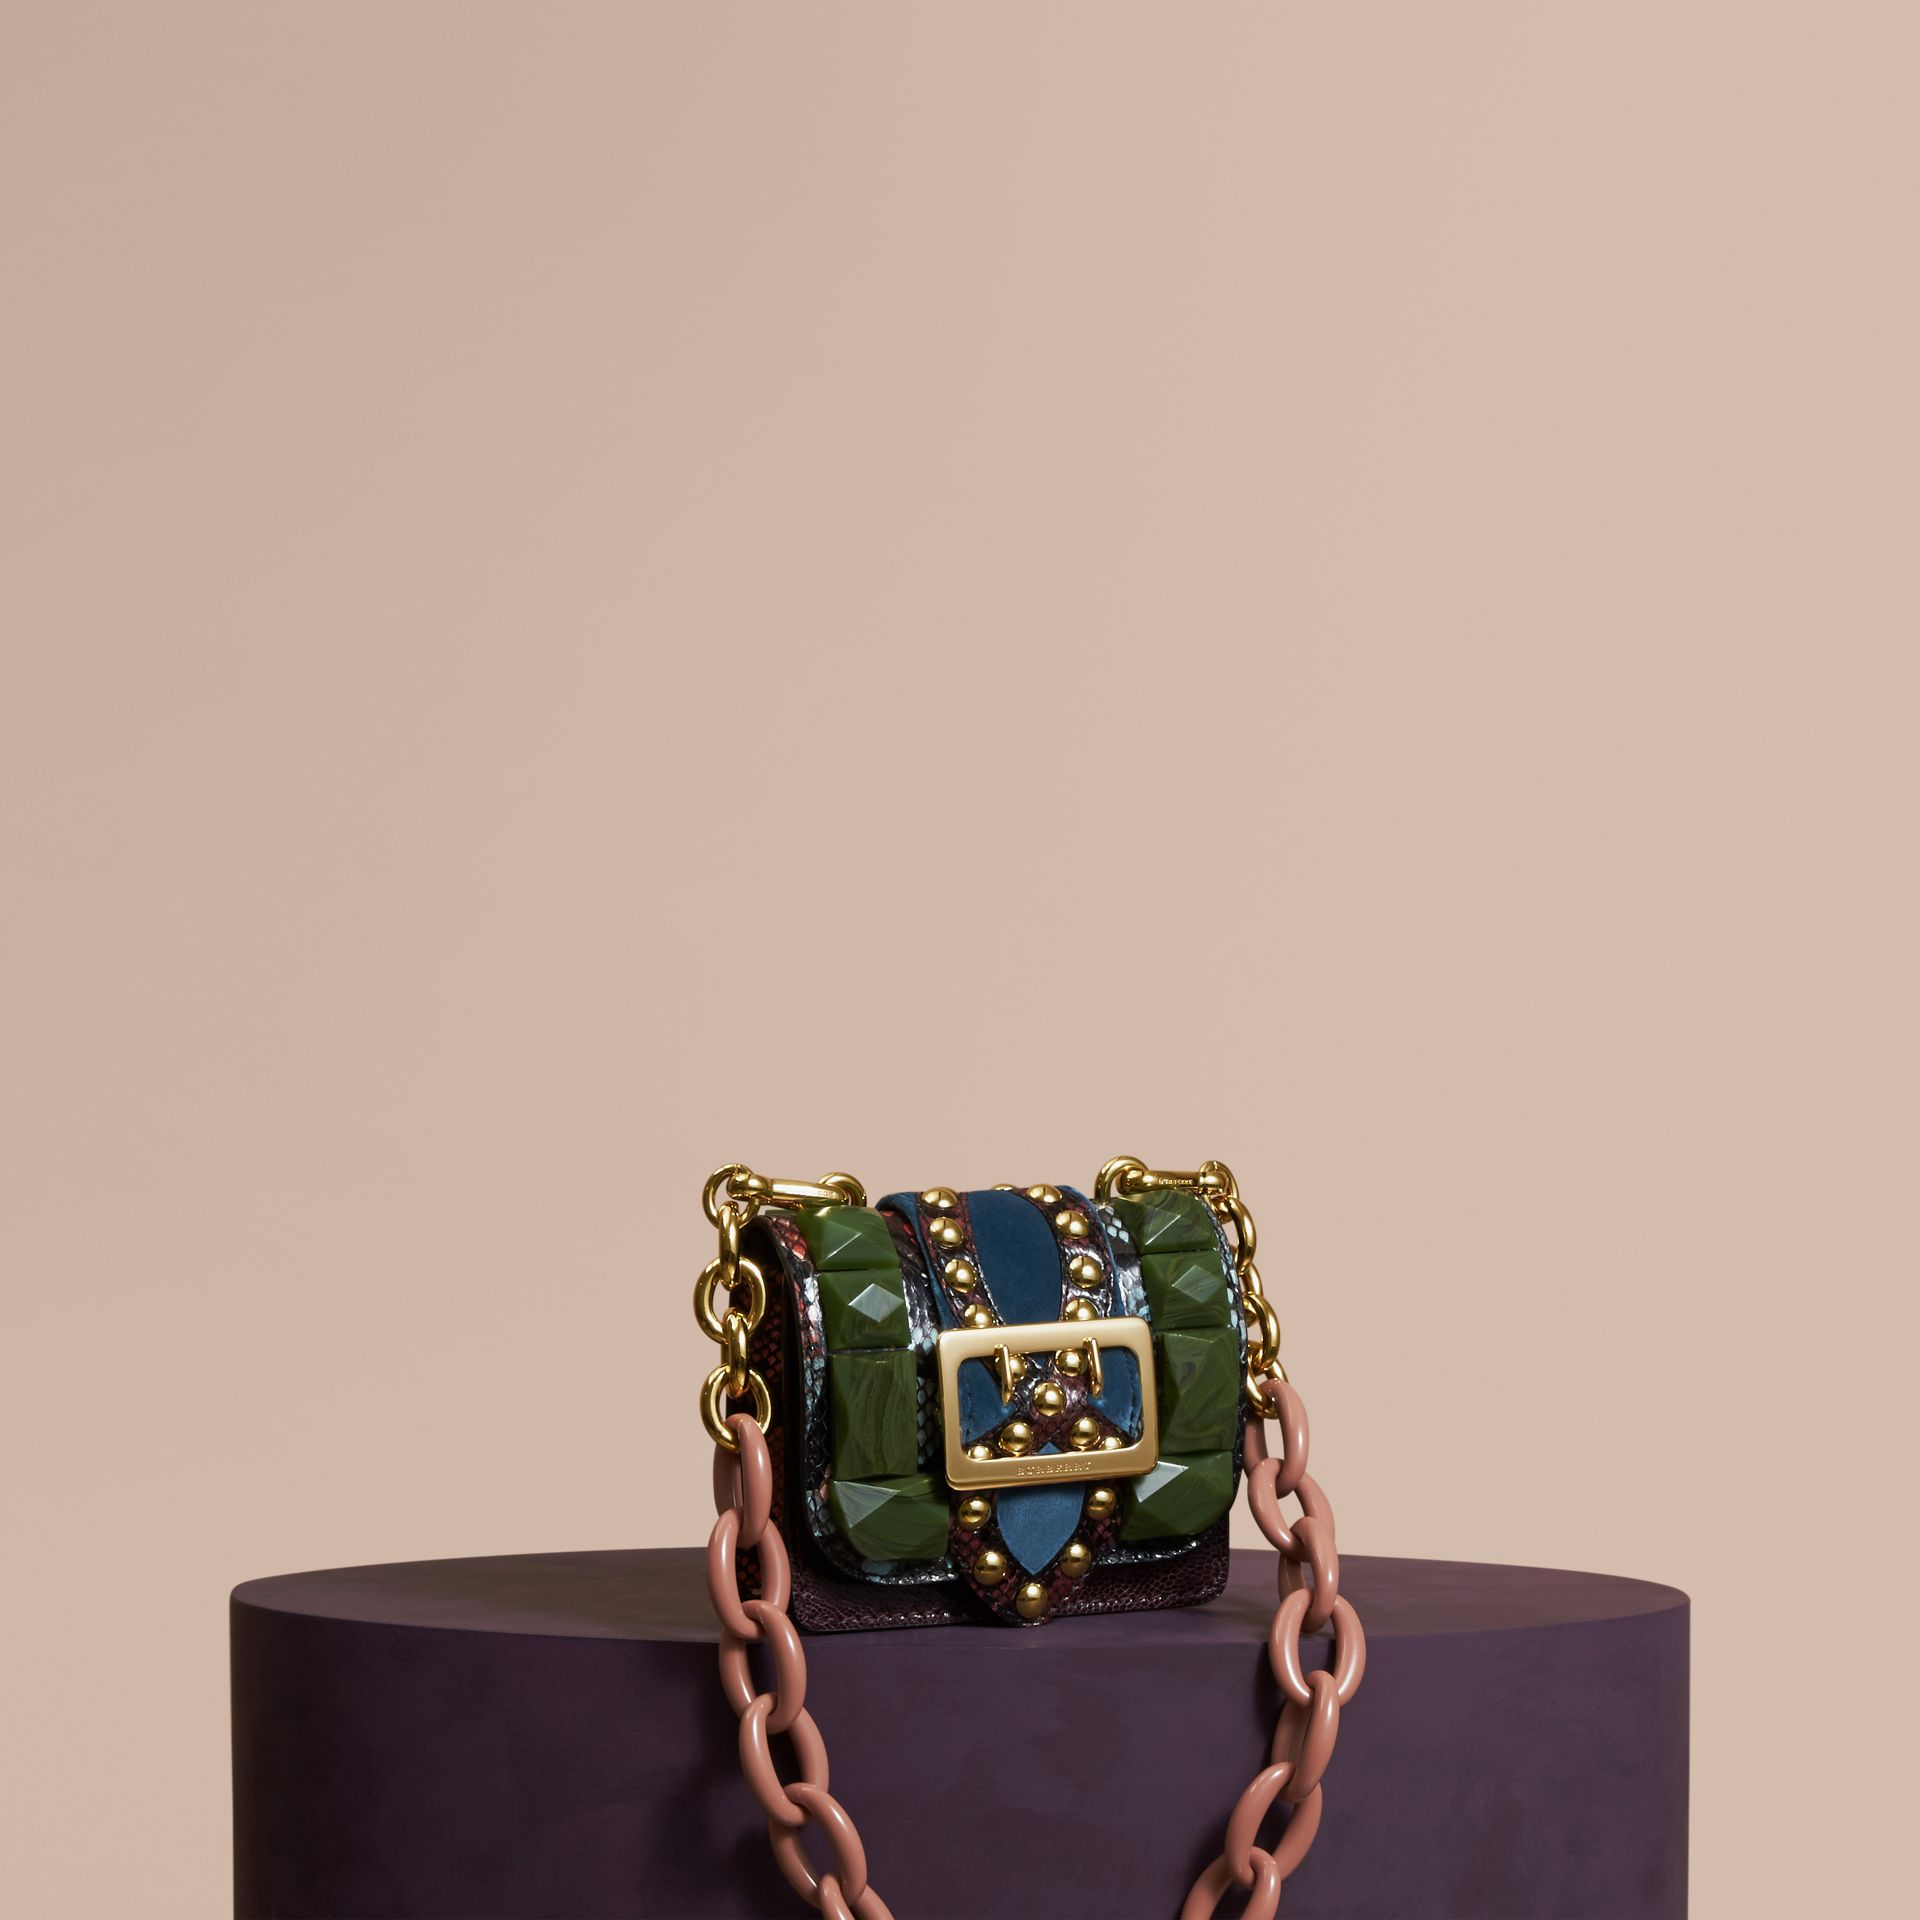 Turquoise green The Mini Square Buckle Bag in Ostrich, Snakeskin and Velvet - gallery image 1